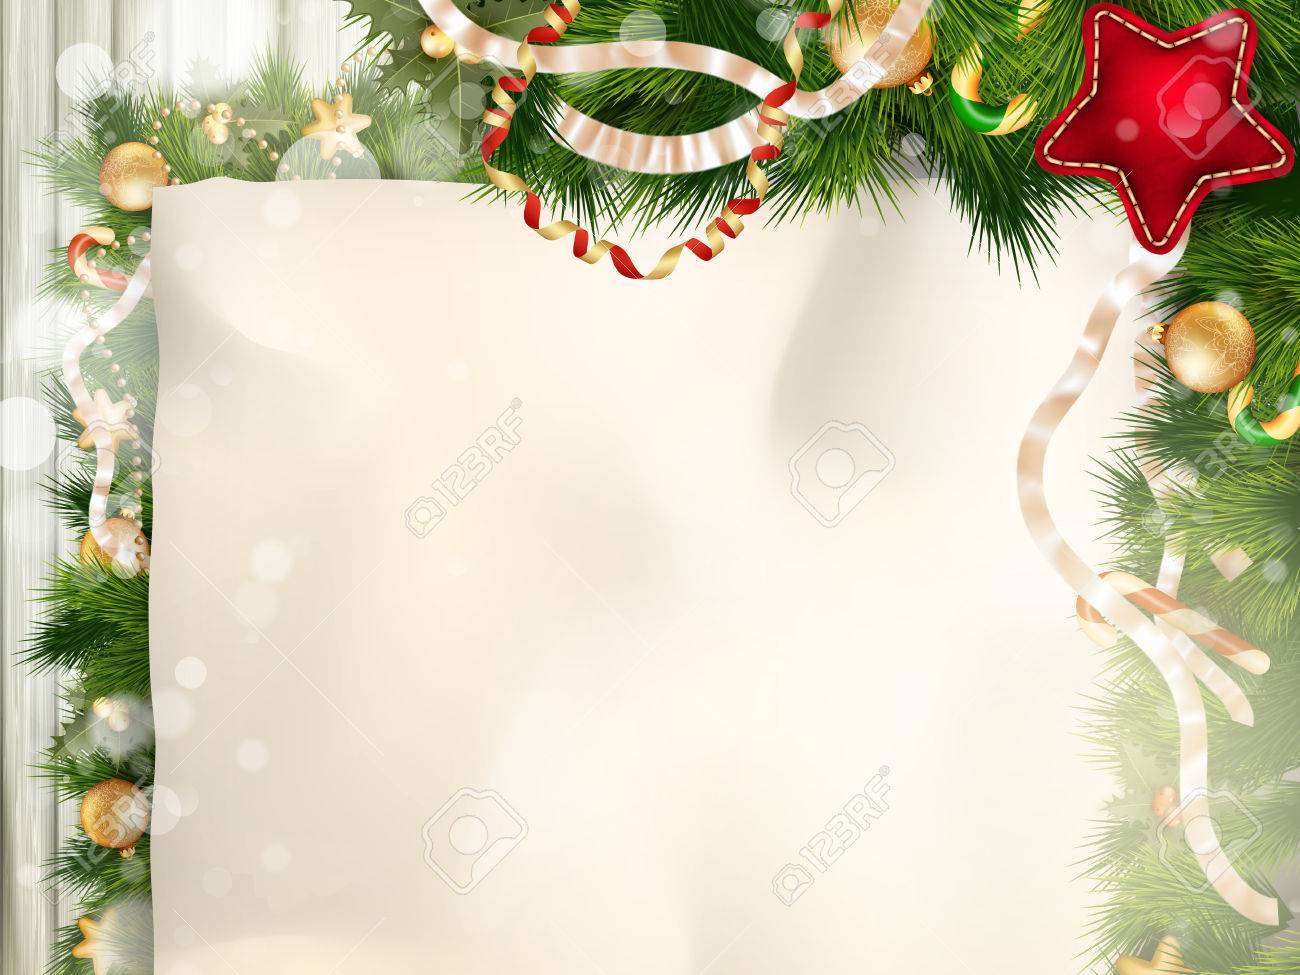 Christmas Letter Stock Photos. Royalty Free Christmas Letter Images